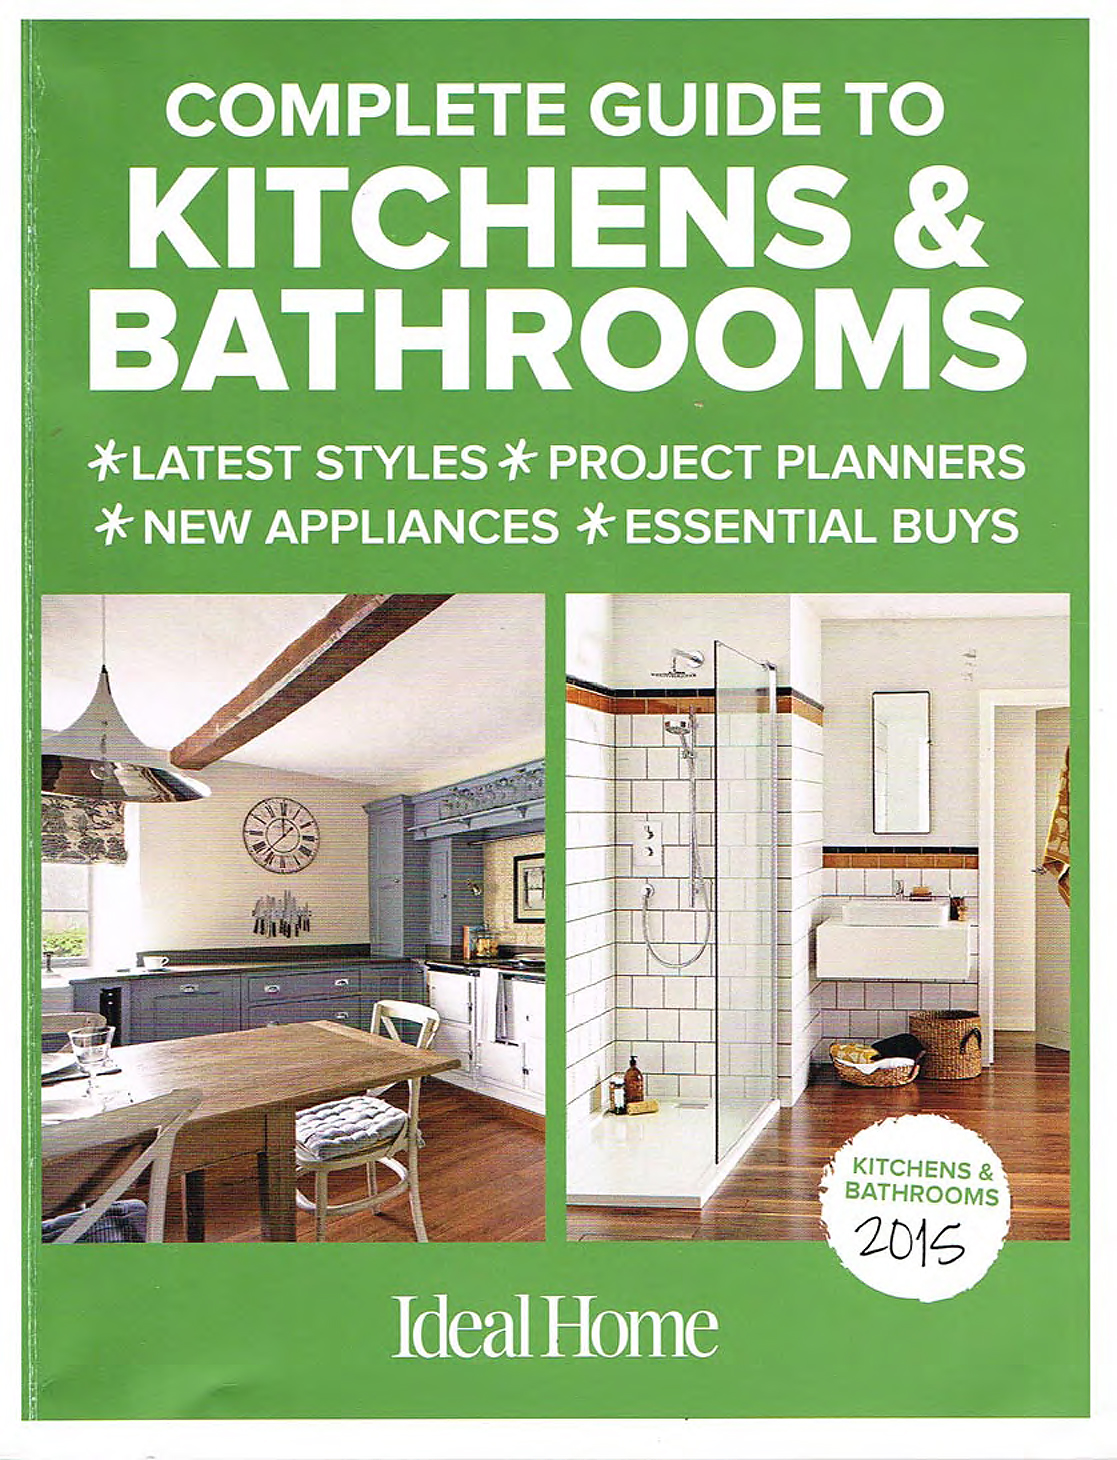 BS_Ideal_Home_Supplement_March2015_Coverage-1.jpg